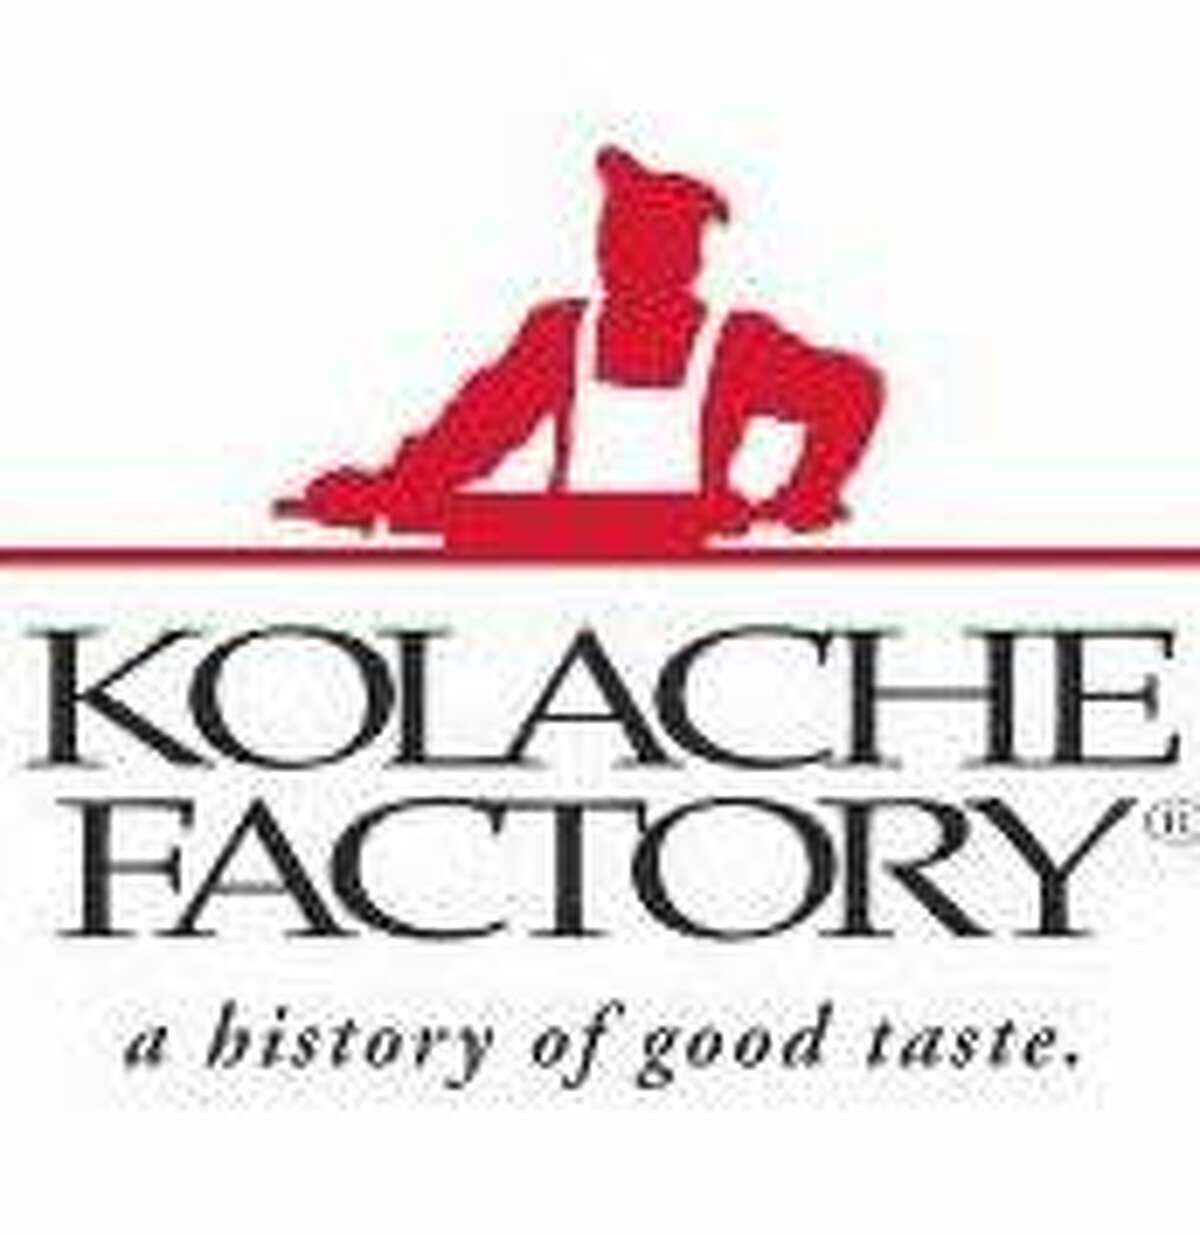 Kolache Factory, a unique national pastry chain based in Katy, recently ranked in Entrepreneur magazine's Franchise 500®, the world's first, best and most comprehensive franchise ranking.